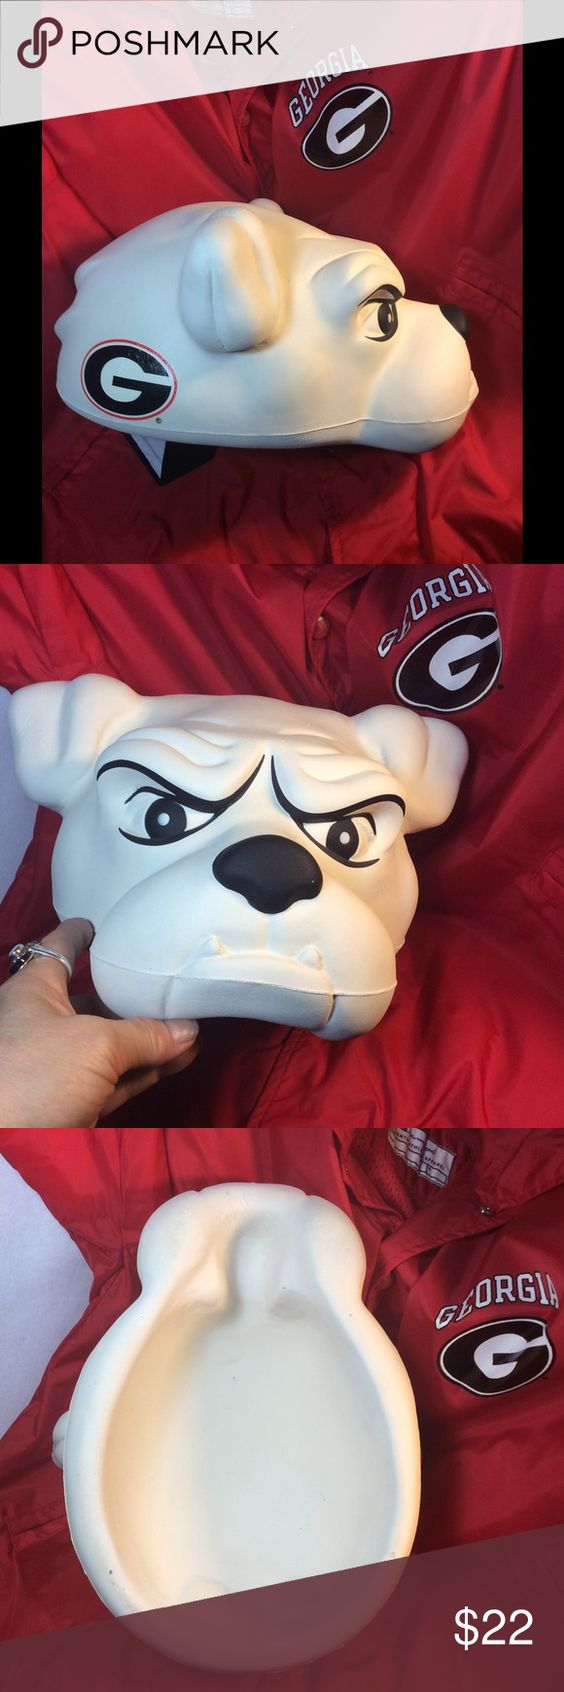 University of Georgia Bulldog Hat Really unusual and such a fun hat for Georgia fans!  Wanna get the TV cameras on you at the game?  Happened to us twice, so be ready!  Other fans will stop you to see it!  Be the life of the gridiron party!  Hat is made of some kind of moulded spongy/soft foam.  You can see mould lines, small crack areas and small bubble/defects when you look closely at the spongy material.  It has always been that way and can't really be seen at a distance.  Can be cleaned…